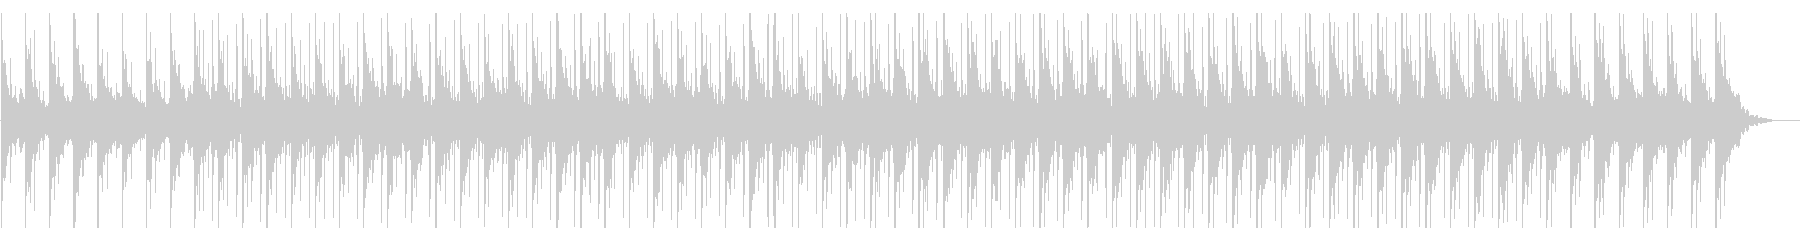 [Kick-out] BGM for news commentary's unreproduced waveform